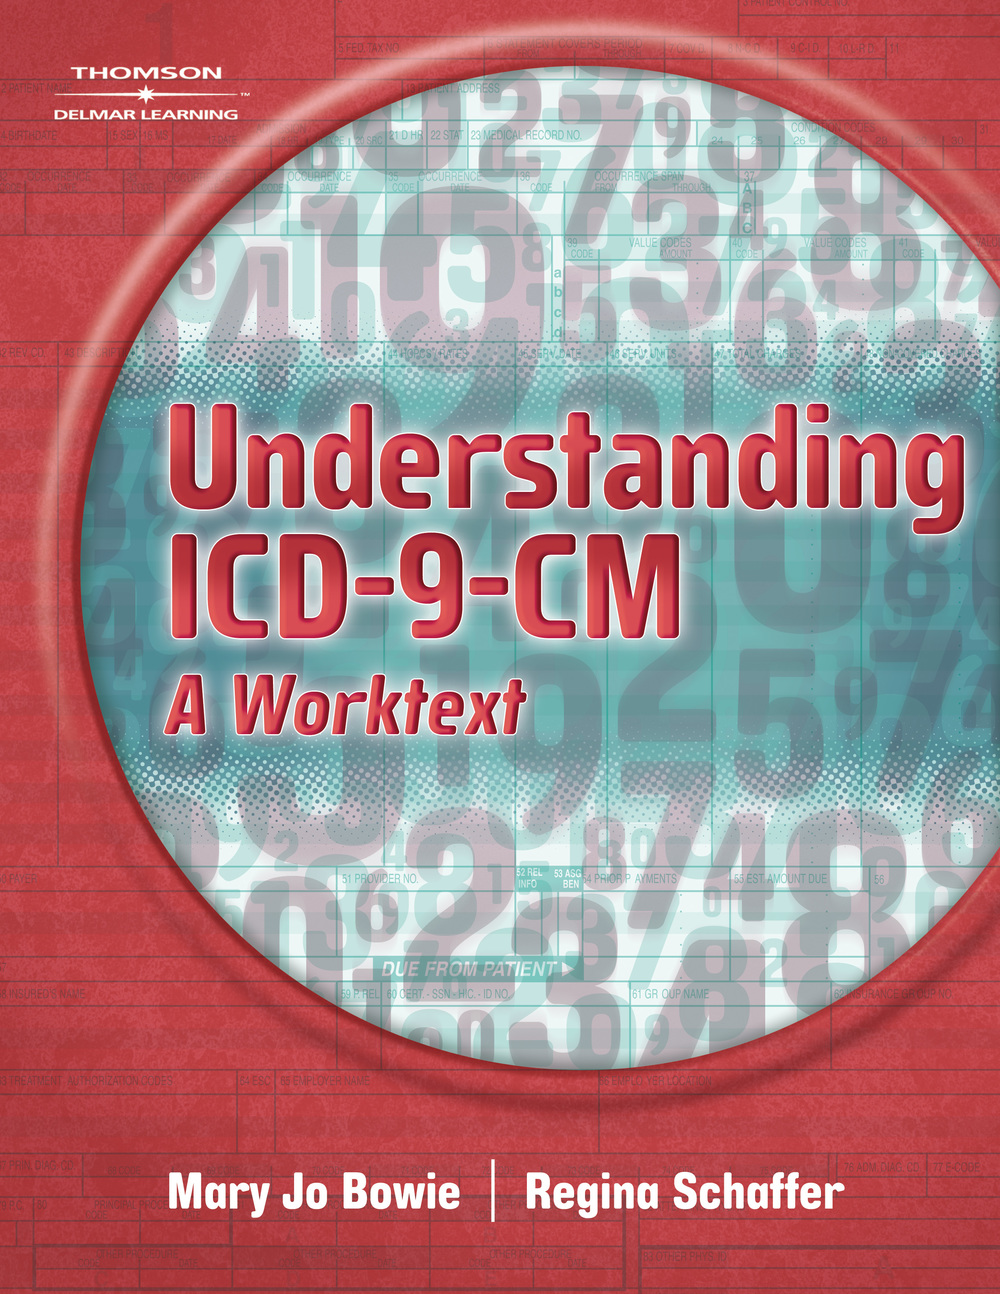 Understanding ICD-9-CM cover